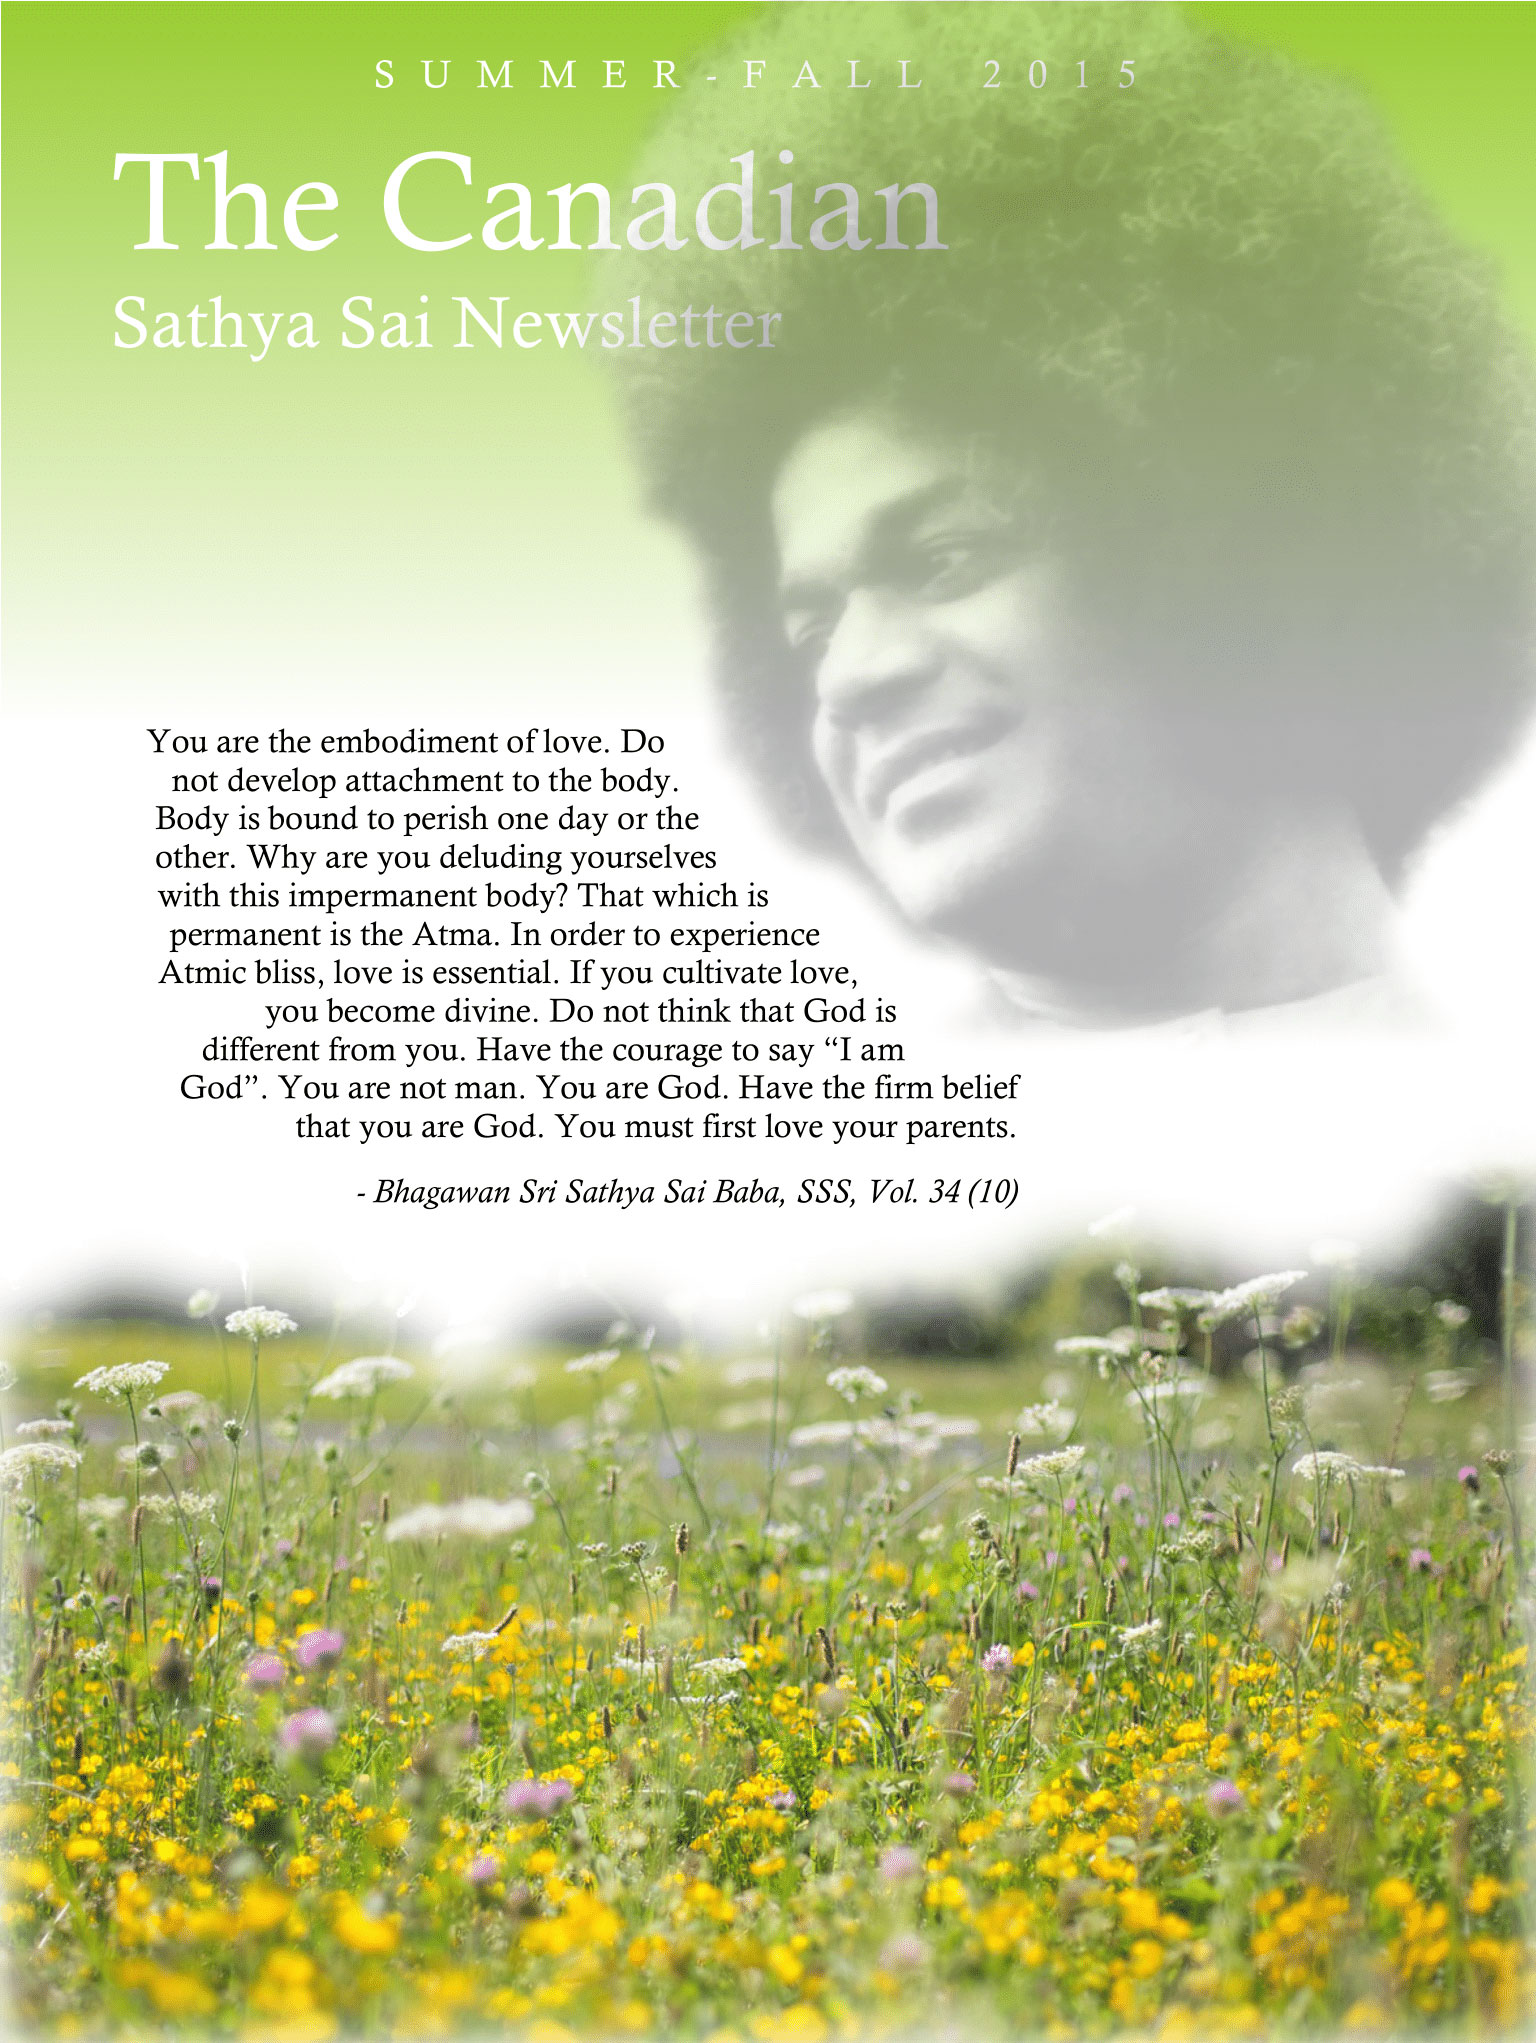 The Canadian Sathya Sai Magazine - Summer-Fall 2015